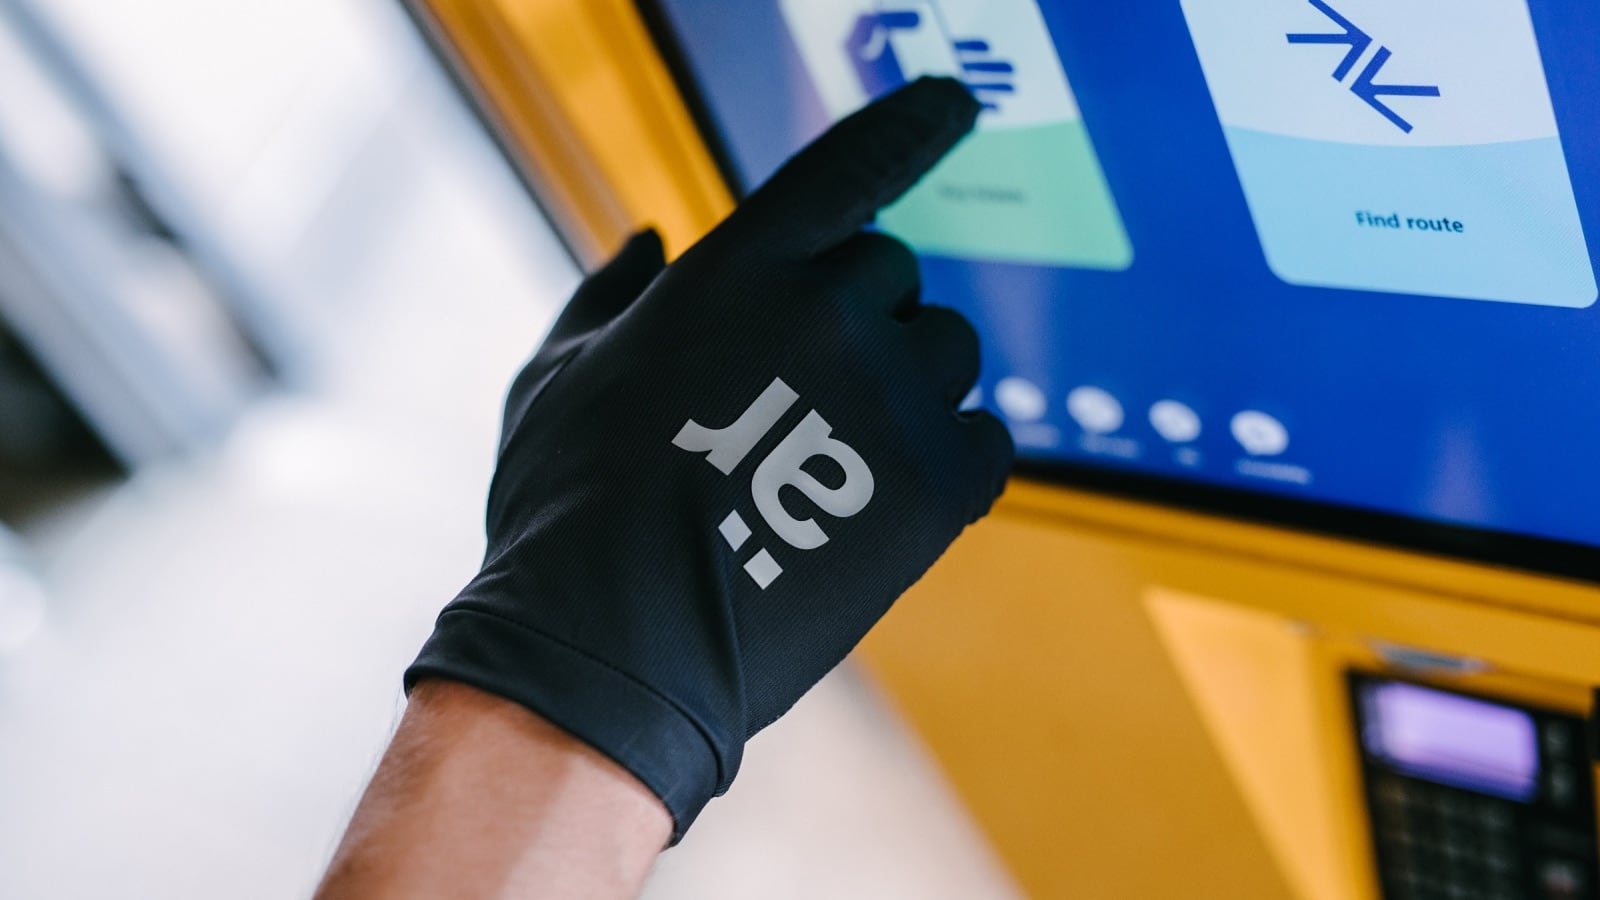 är Gloves protective self-cleaning gloves are touchscreen-friendly and made in the EU